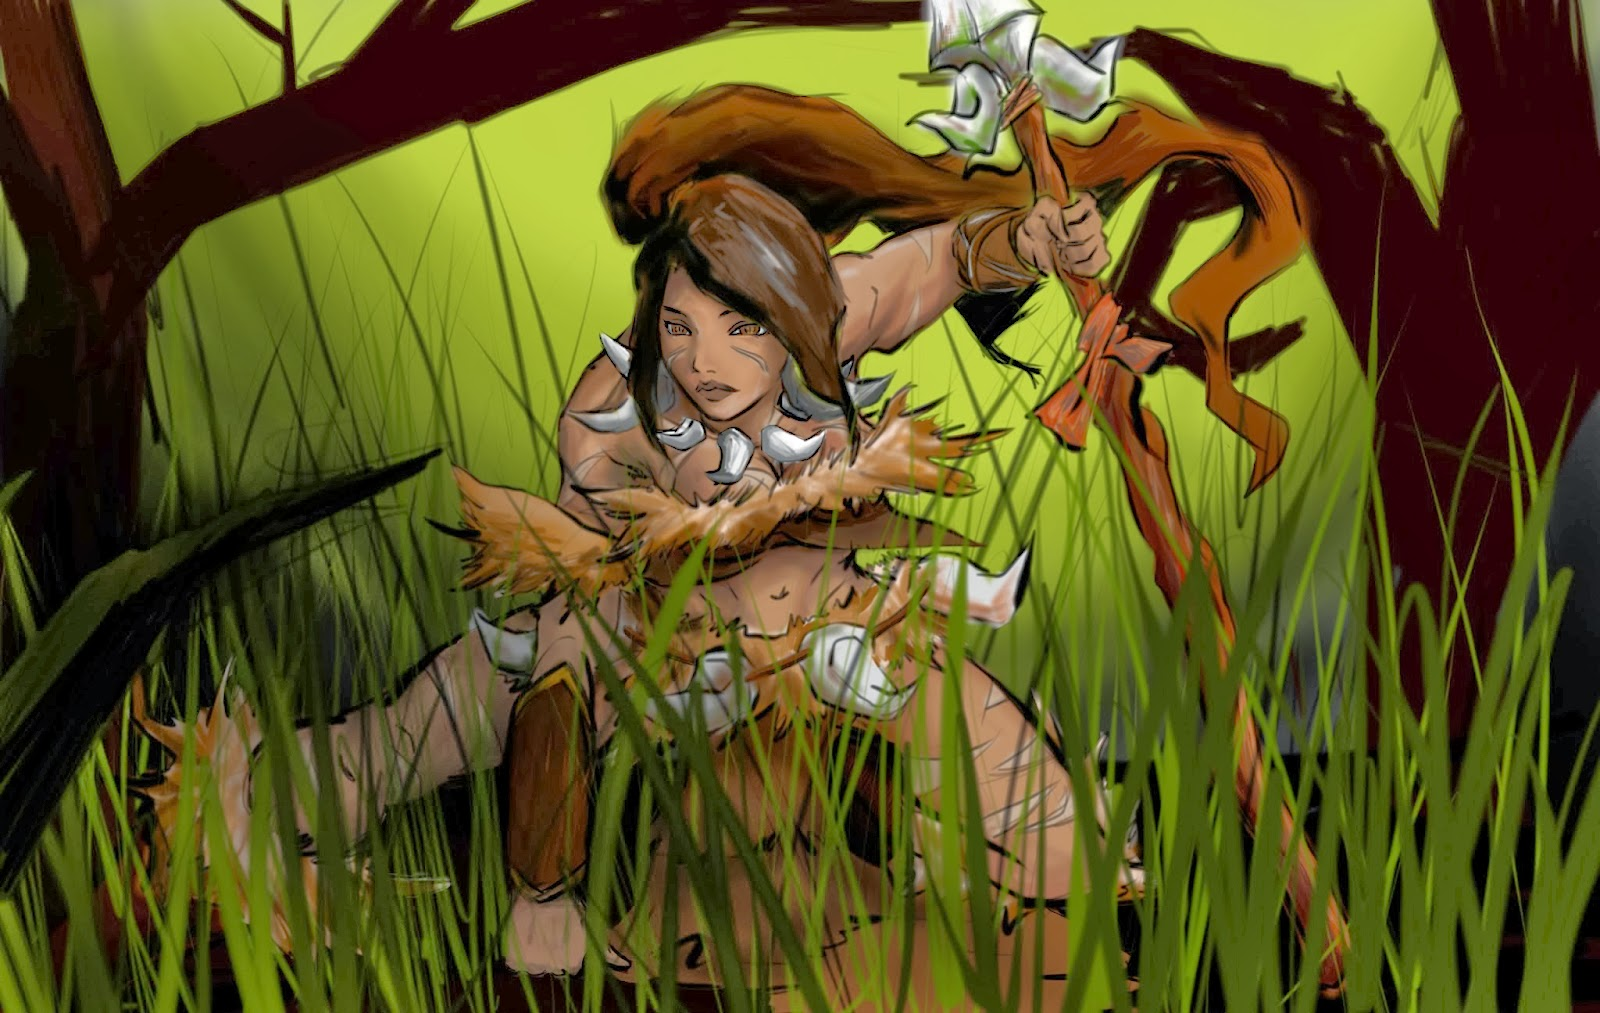 Nidalee League of Legends Wallpaper Nidalee Desktop Wallpaper 1600x1013